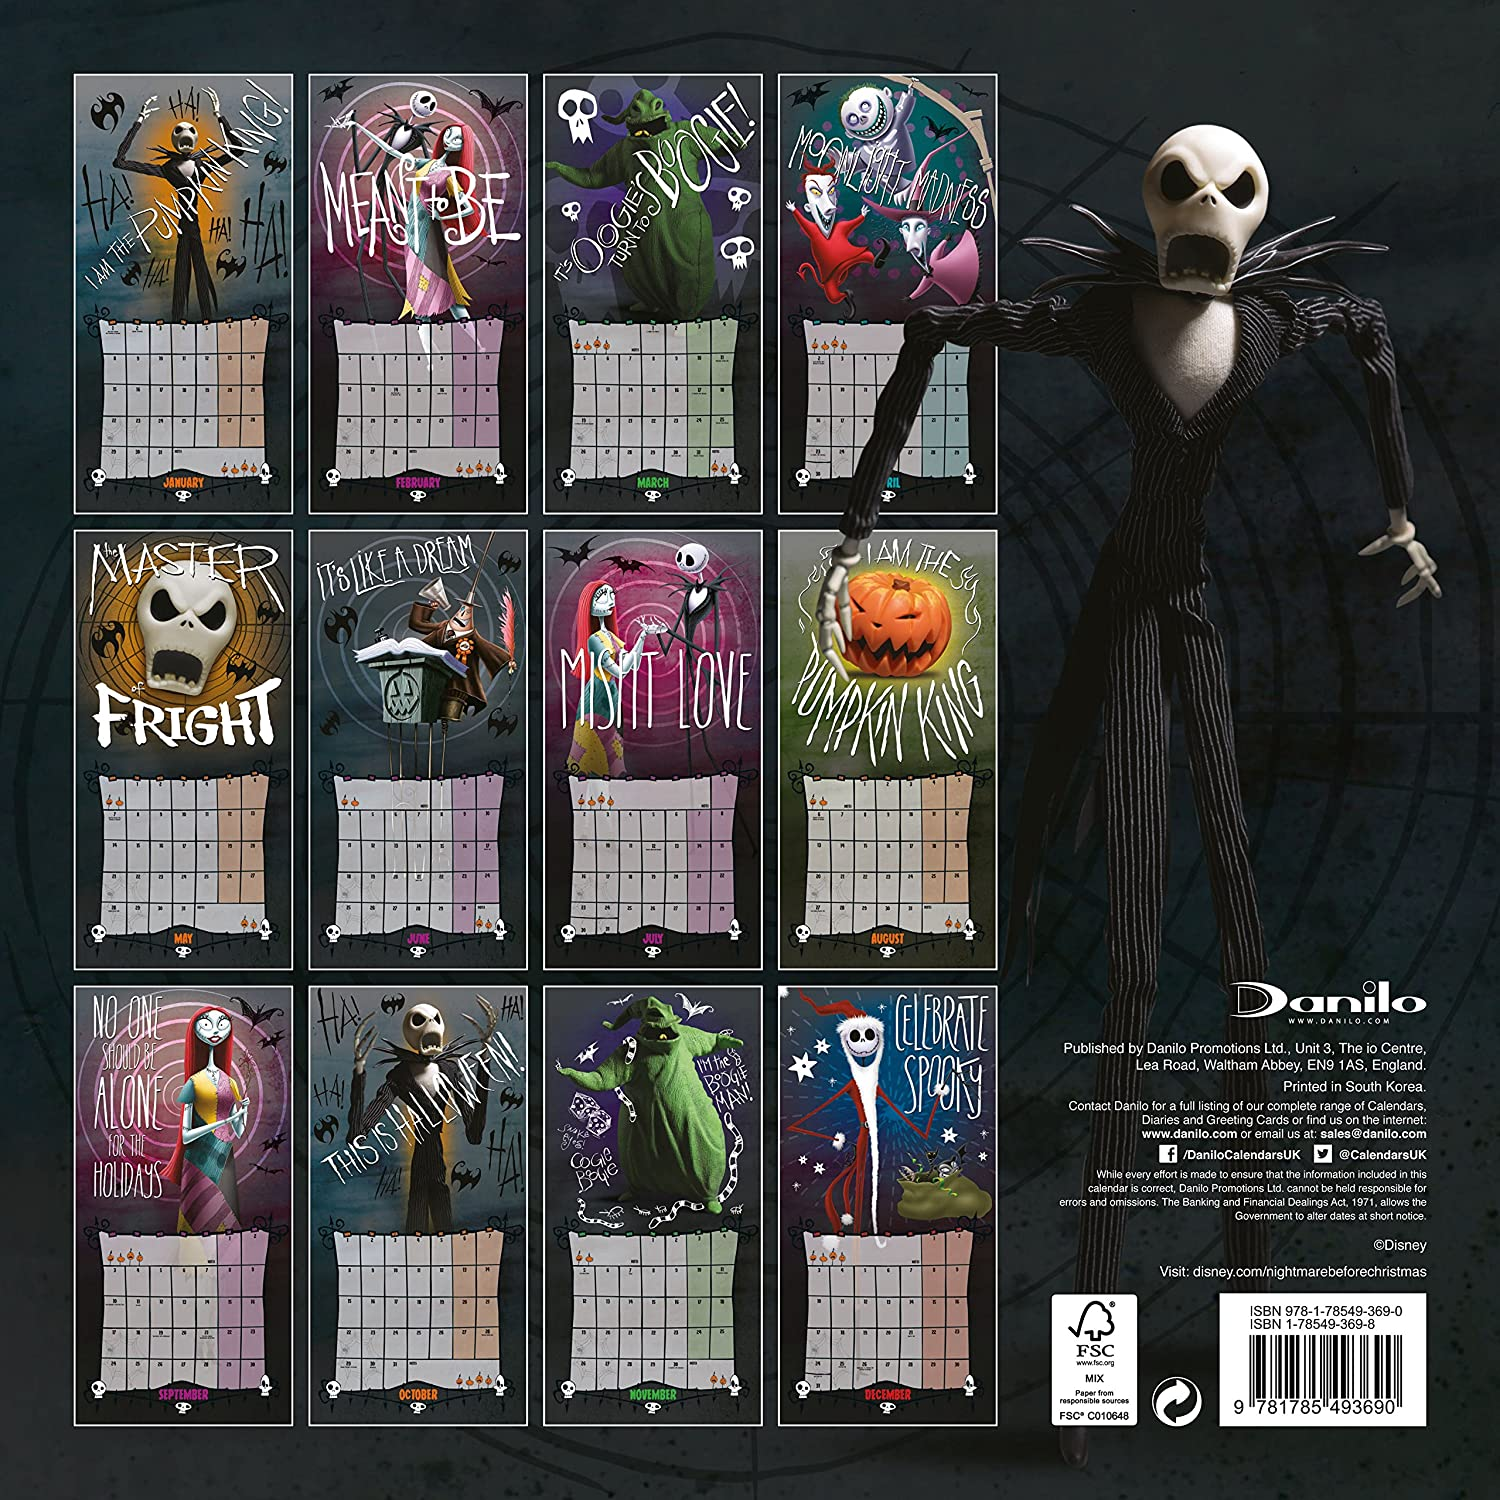 Nightmare Before Christmas Official 2018 Calendar - Square Wall Format (Calendar 2018) Disney Danilo Promotions Limited 1785493698 NON-CLASSIFIABLE